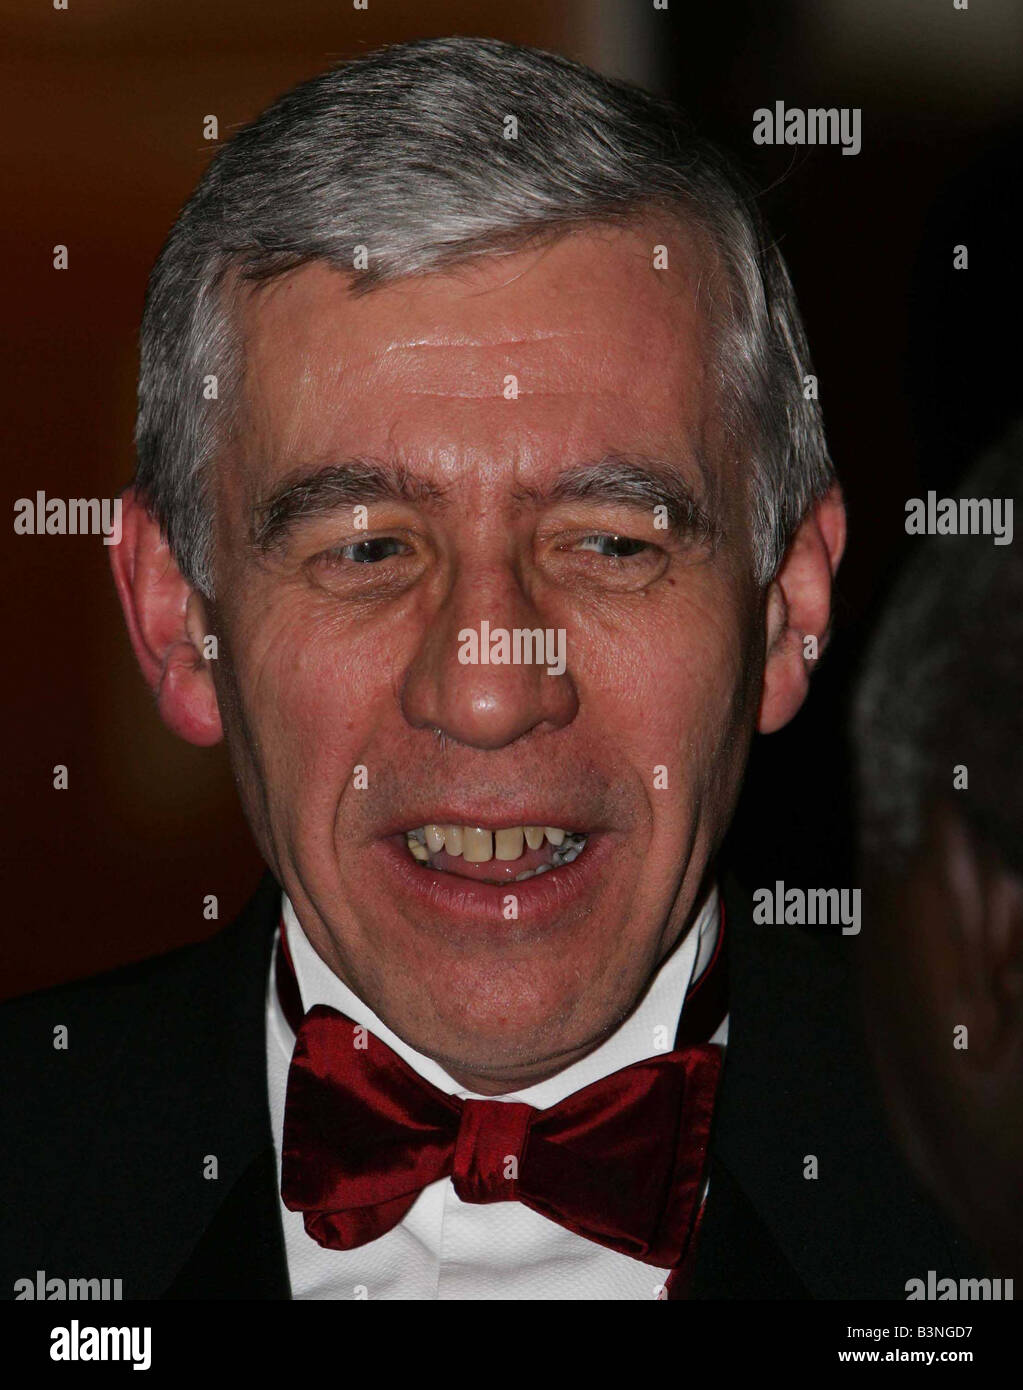 Jack Straw attends the Stephen Lawrence Charitable Trust dinner to celebrate education and Diversity November 2004 - Stock Image